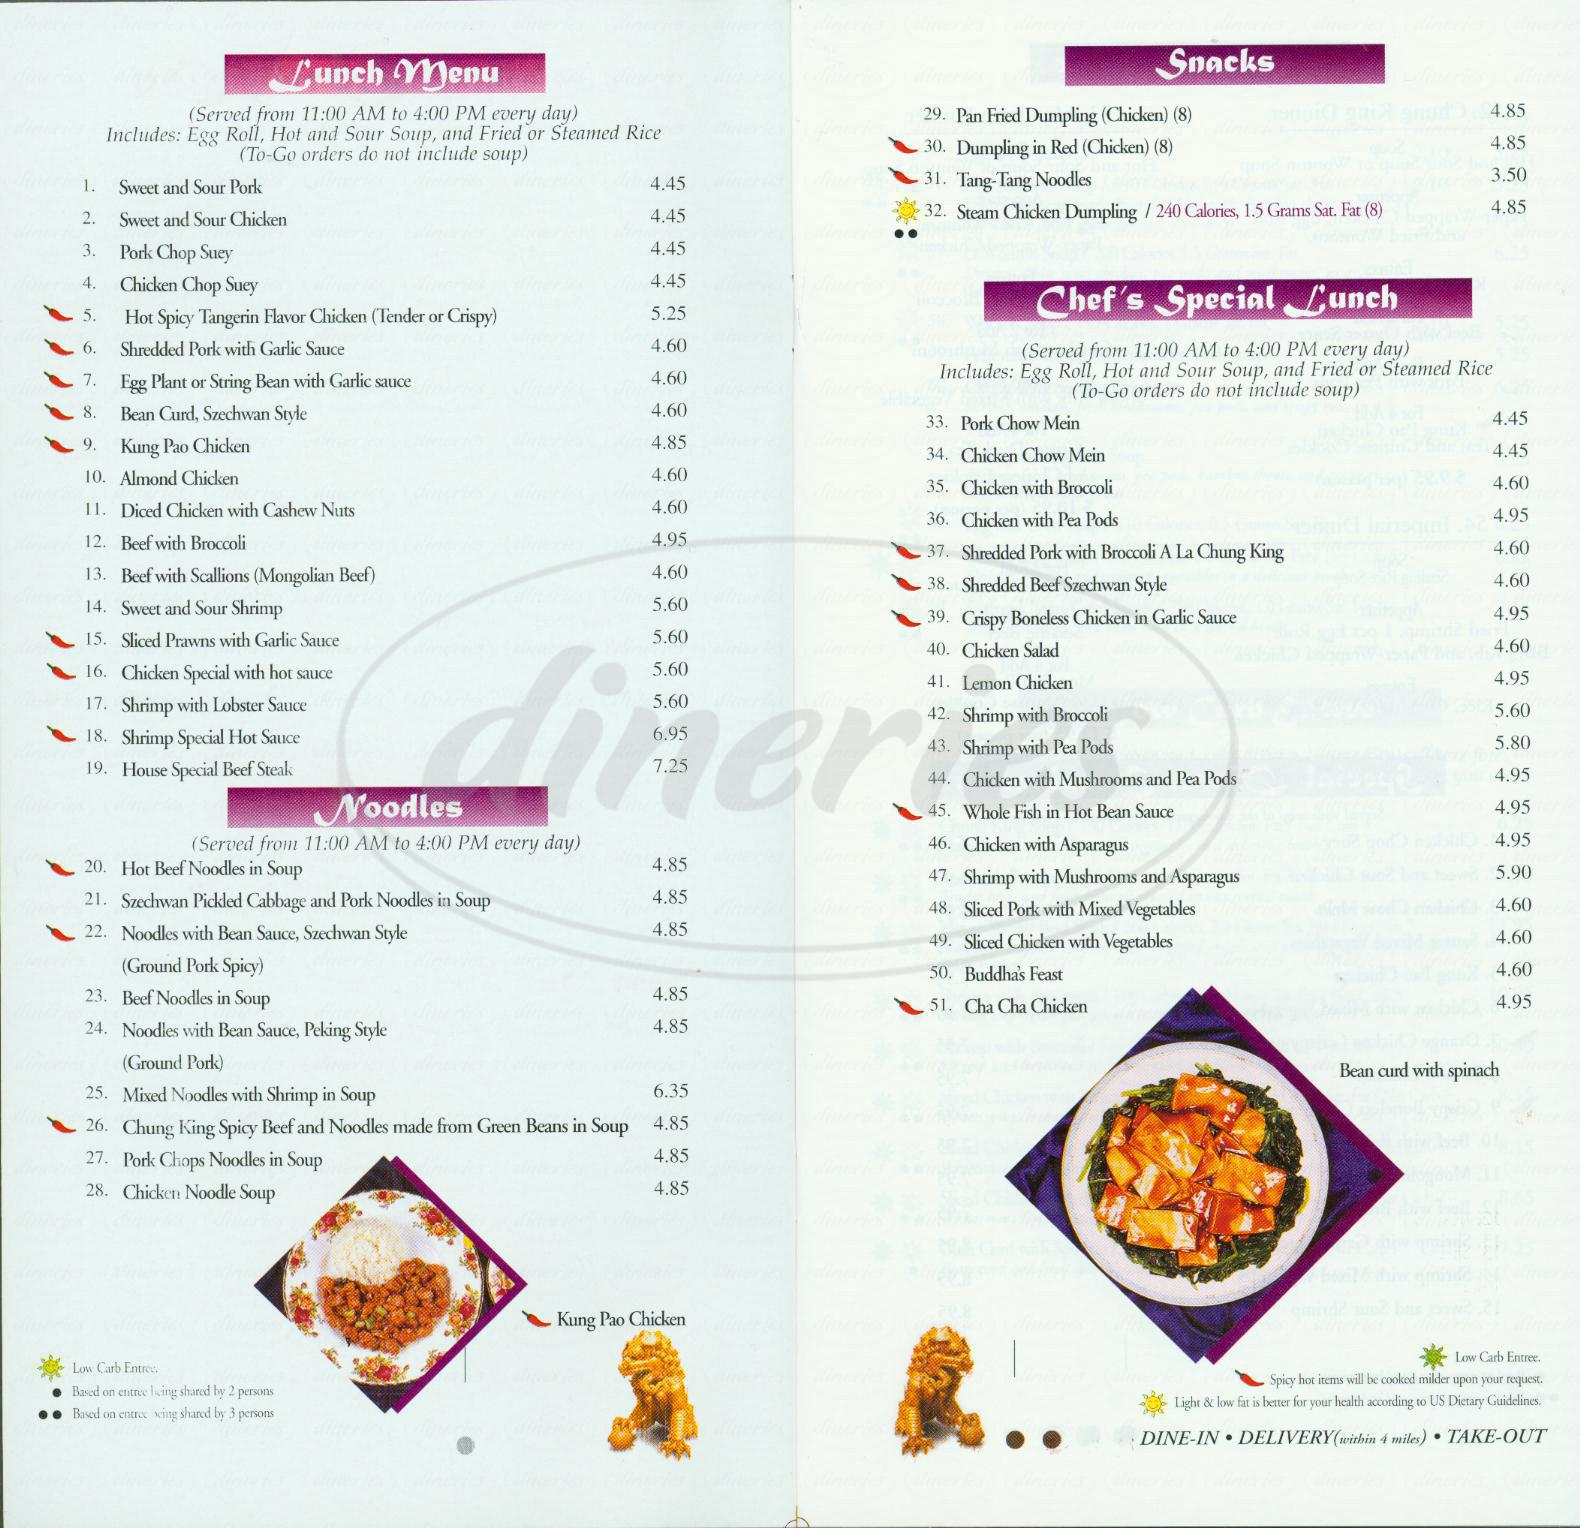 menu for Cheng Du Restaurant